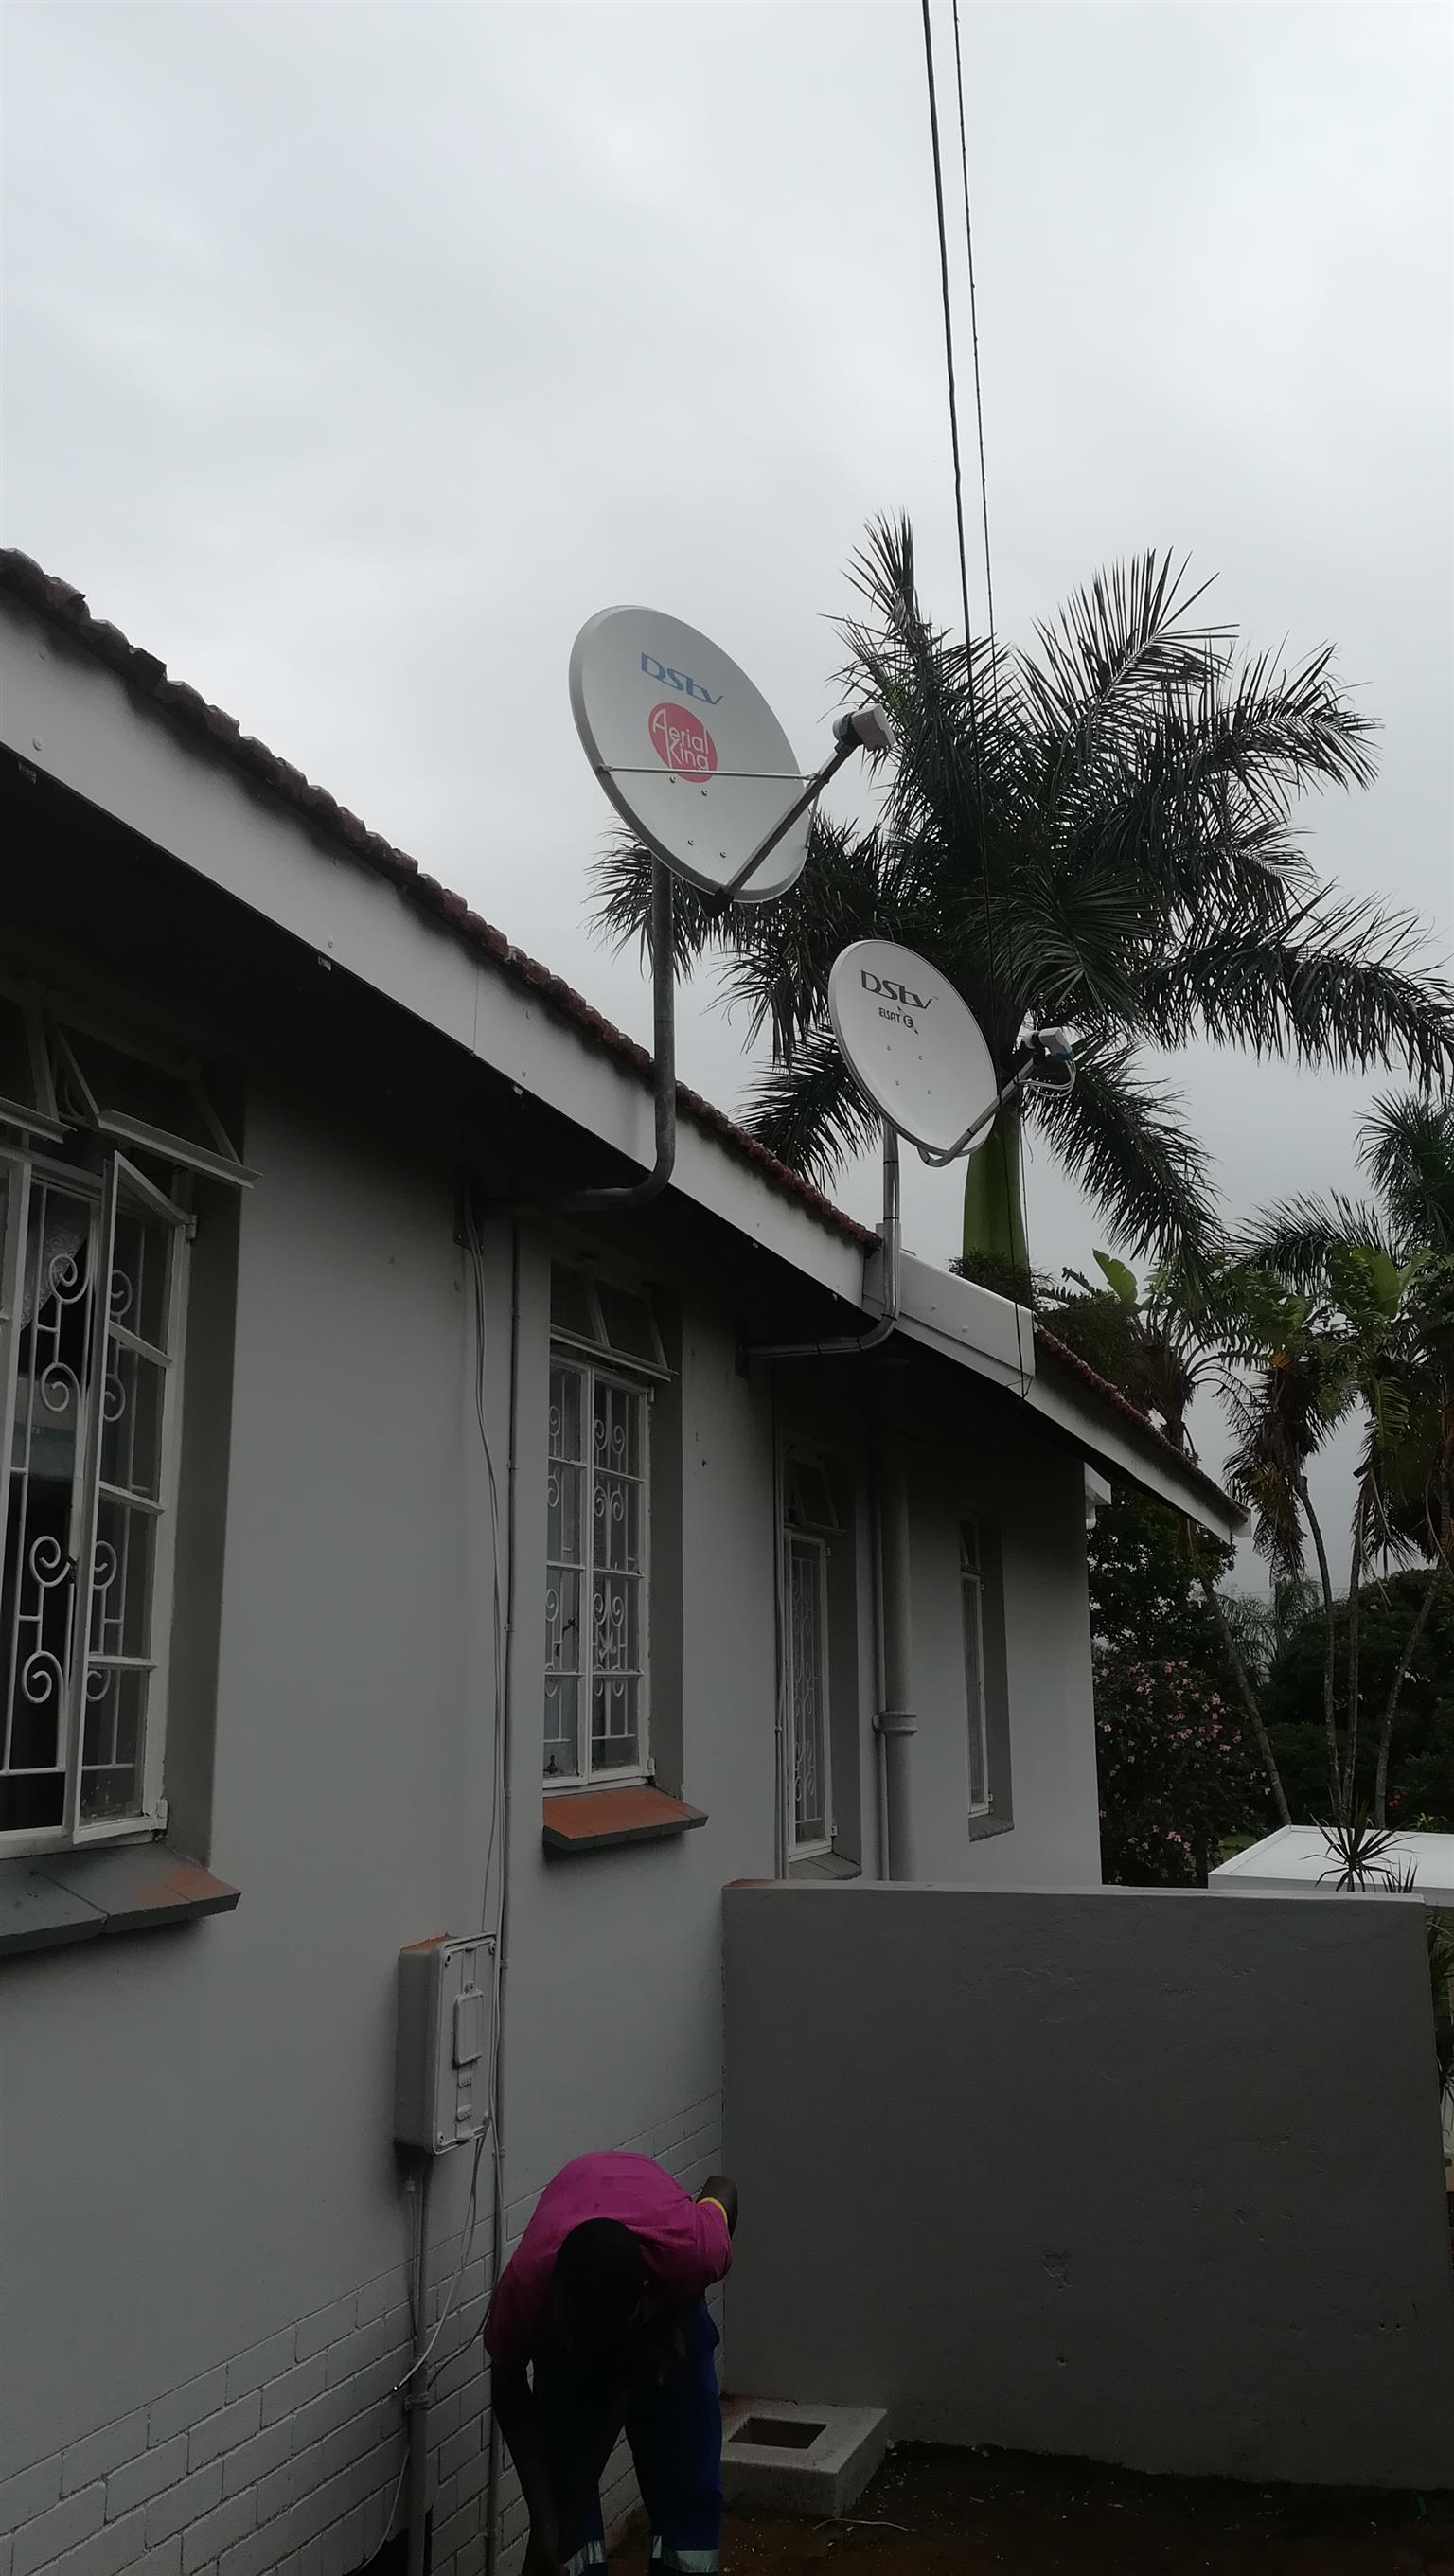 Dstv, star sat, ovhd installation and repairs